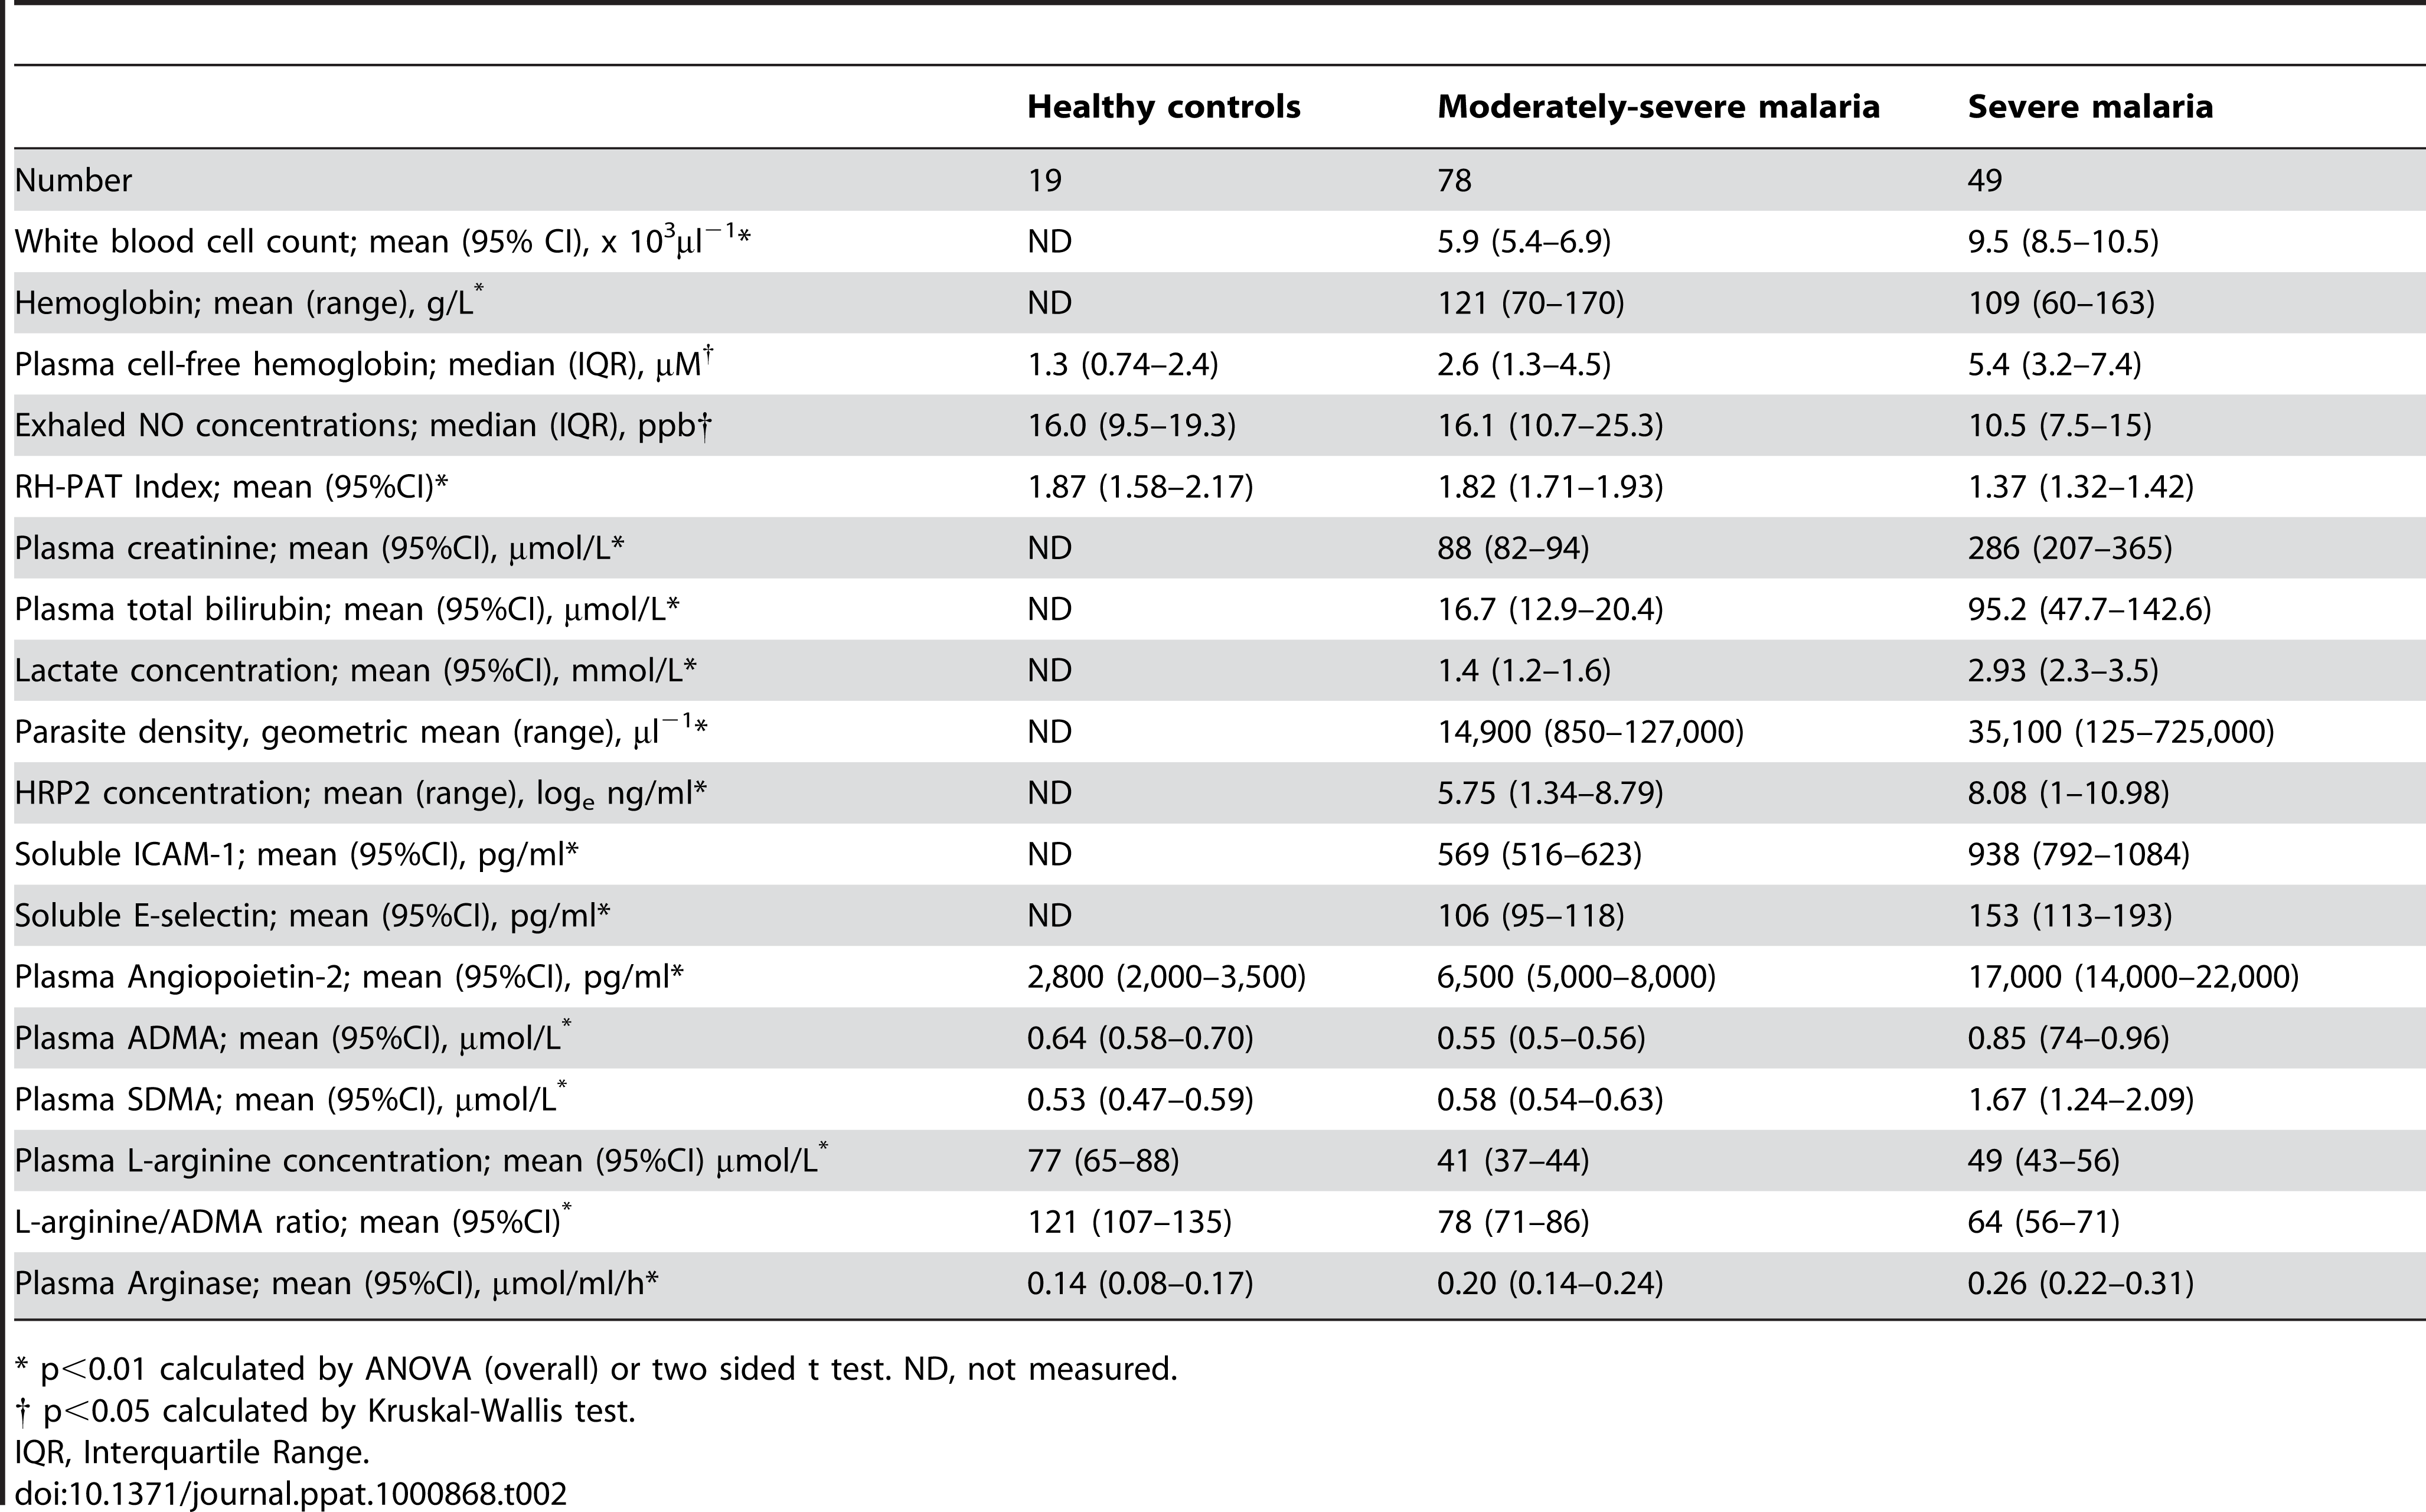 Baseline Laboratory and Physiological Measurements According to Clinical Status.